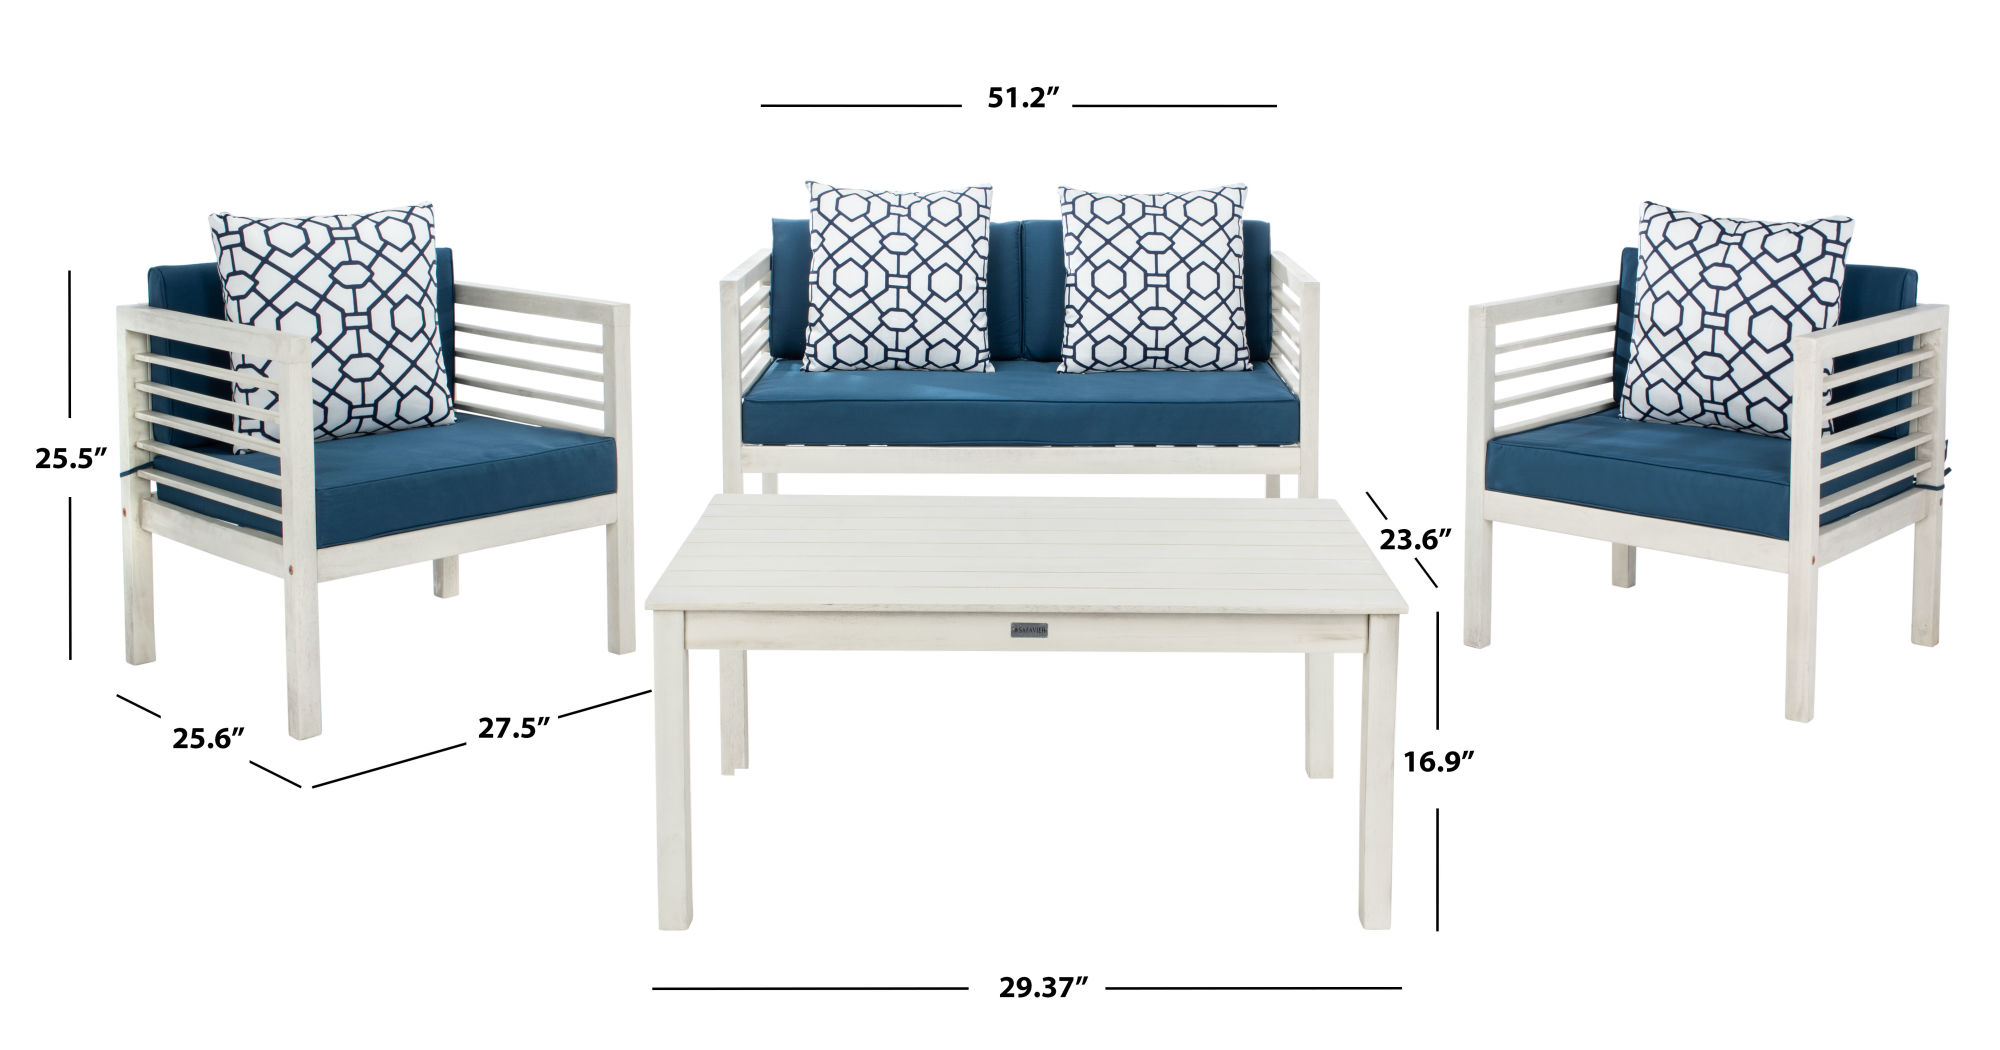 Alda 4 Pc Outdoor Set With Accent Pillows on Safavieh Alda 4Pc Outdoor Set id=60674